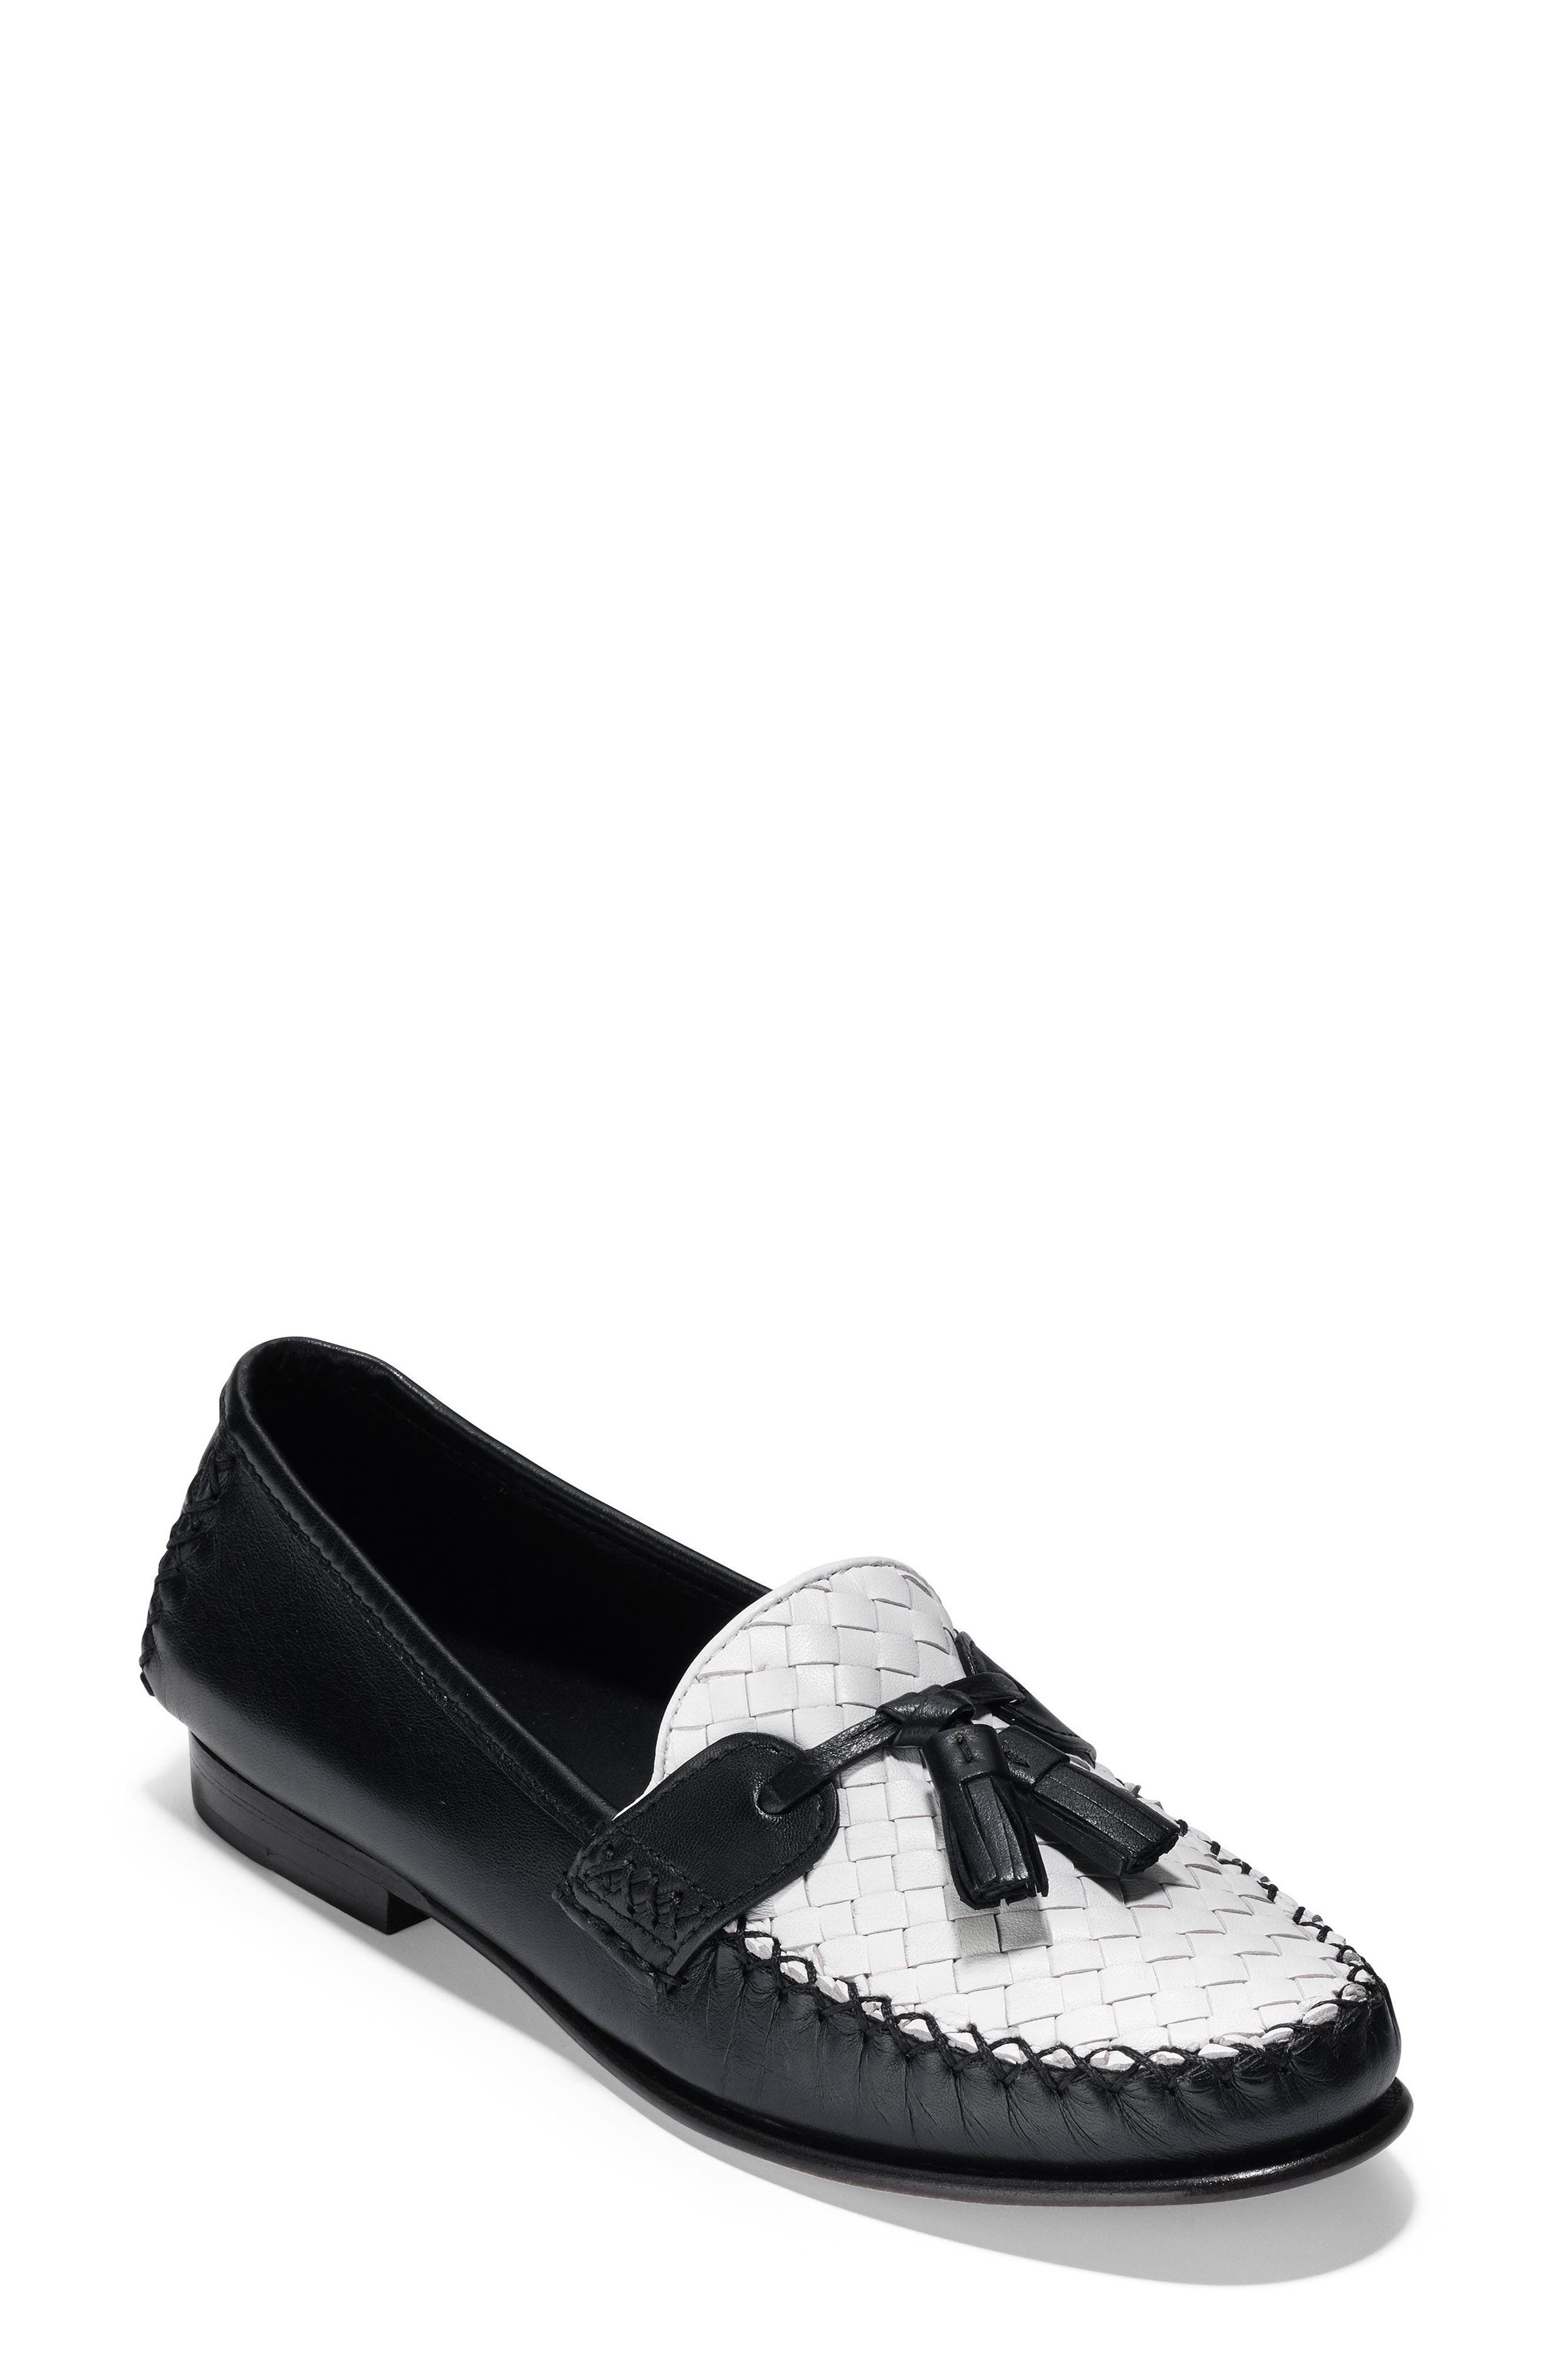 Jagger Loafer,                         Main,                         color, Black/ White Leather